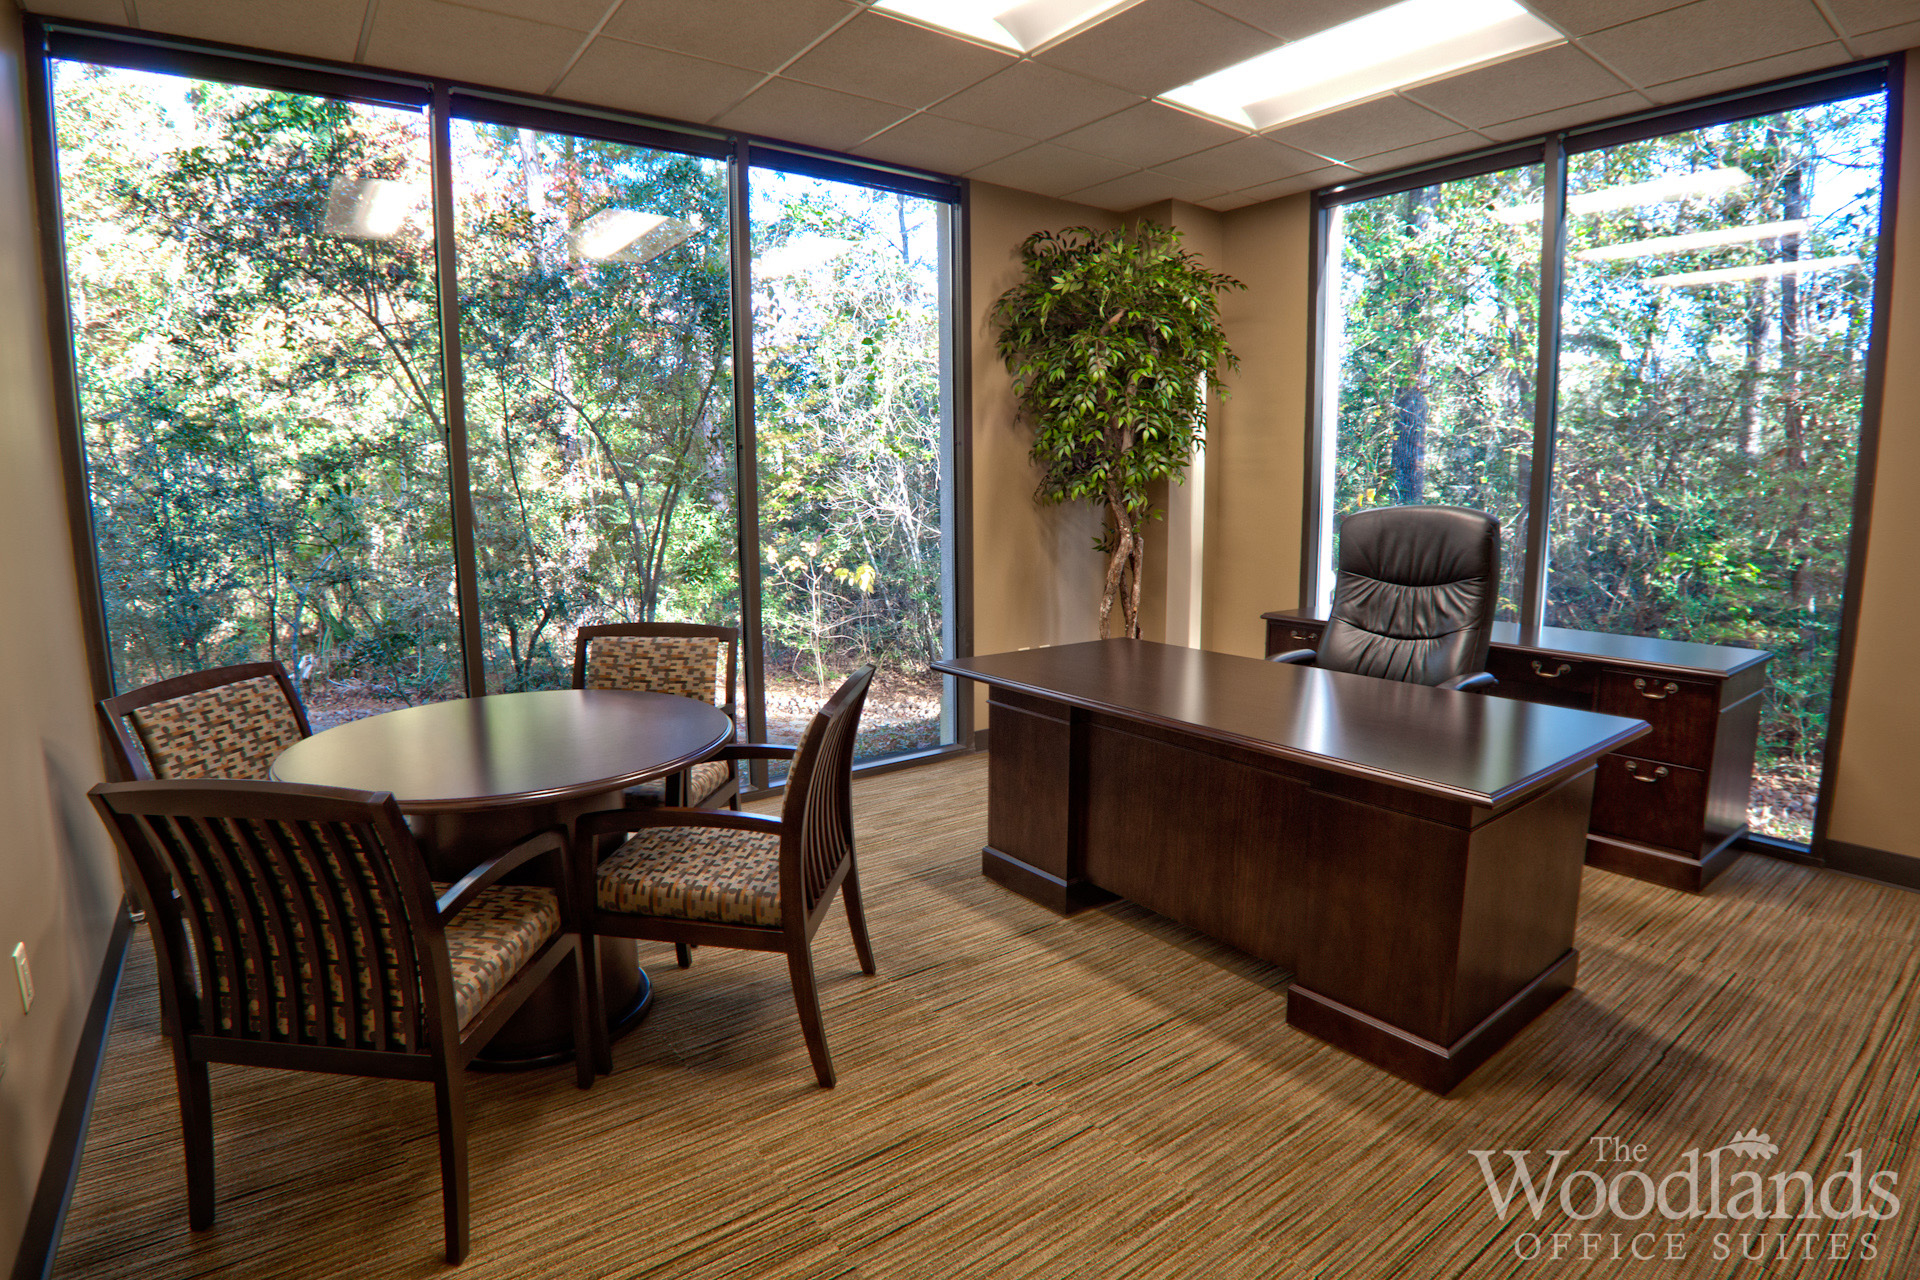 Corner Office Suites offer a spectacular view of The Woodlands